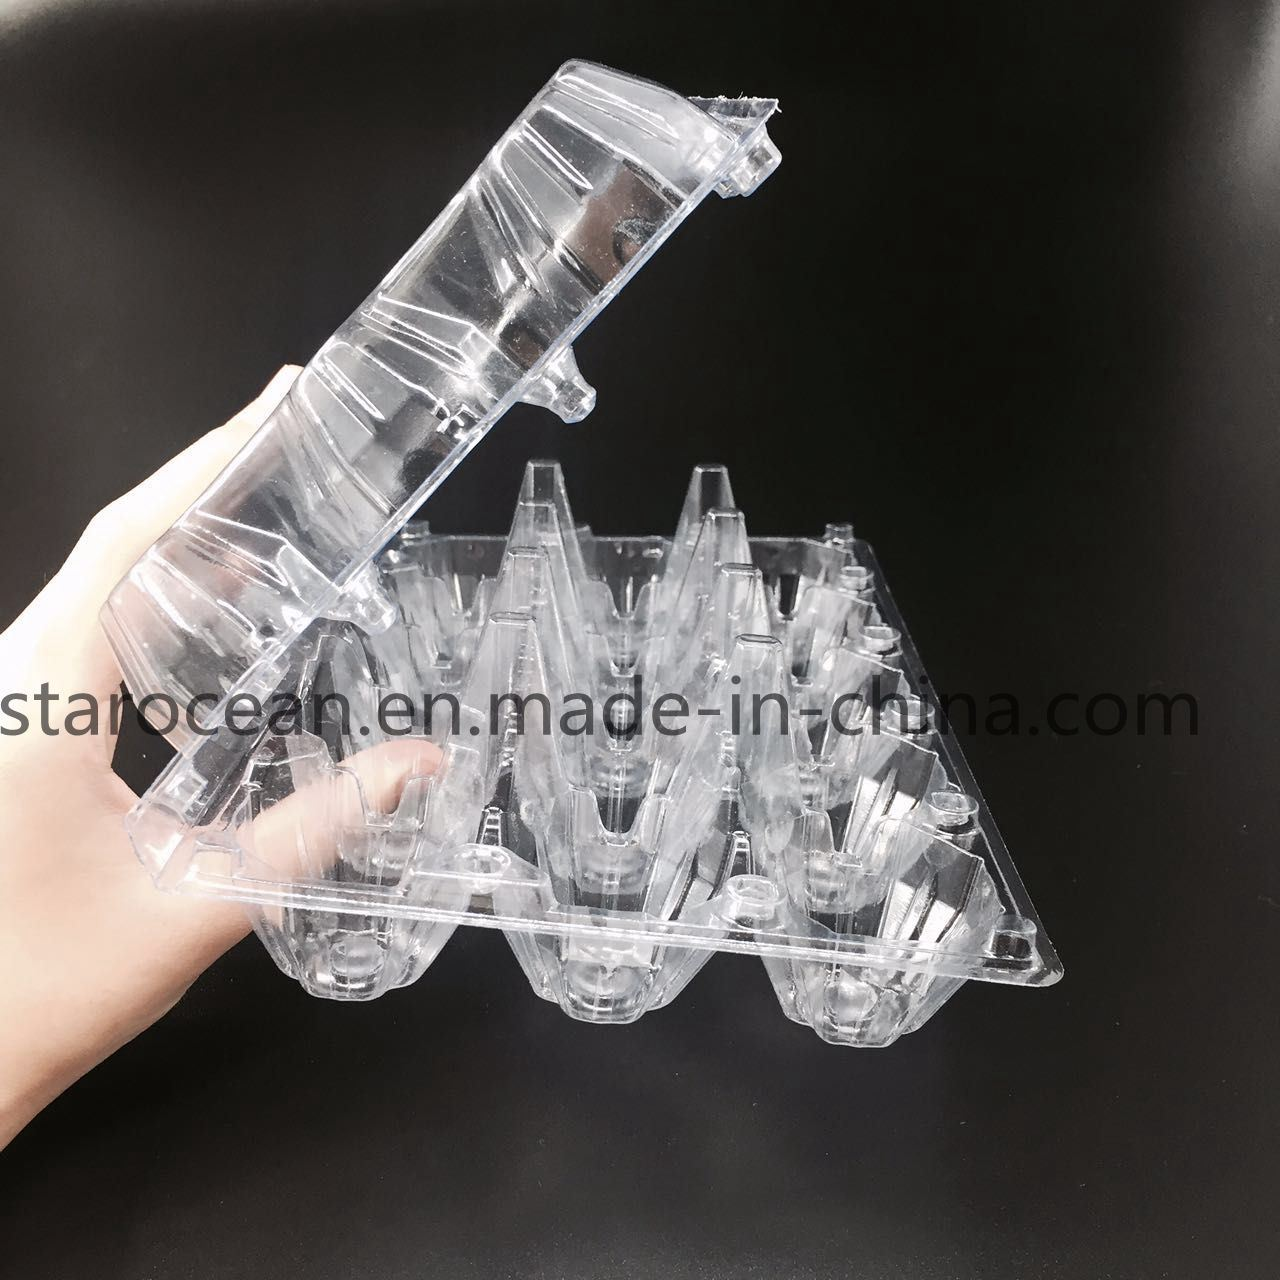 Clamshell Egg Tray Plastic PVC/PP Packaging